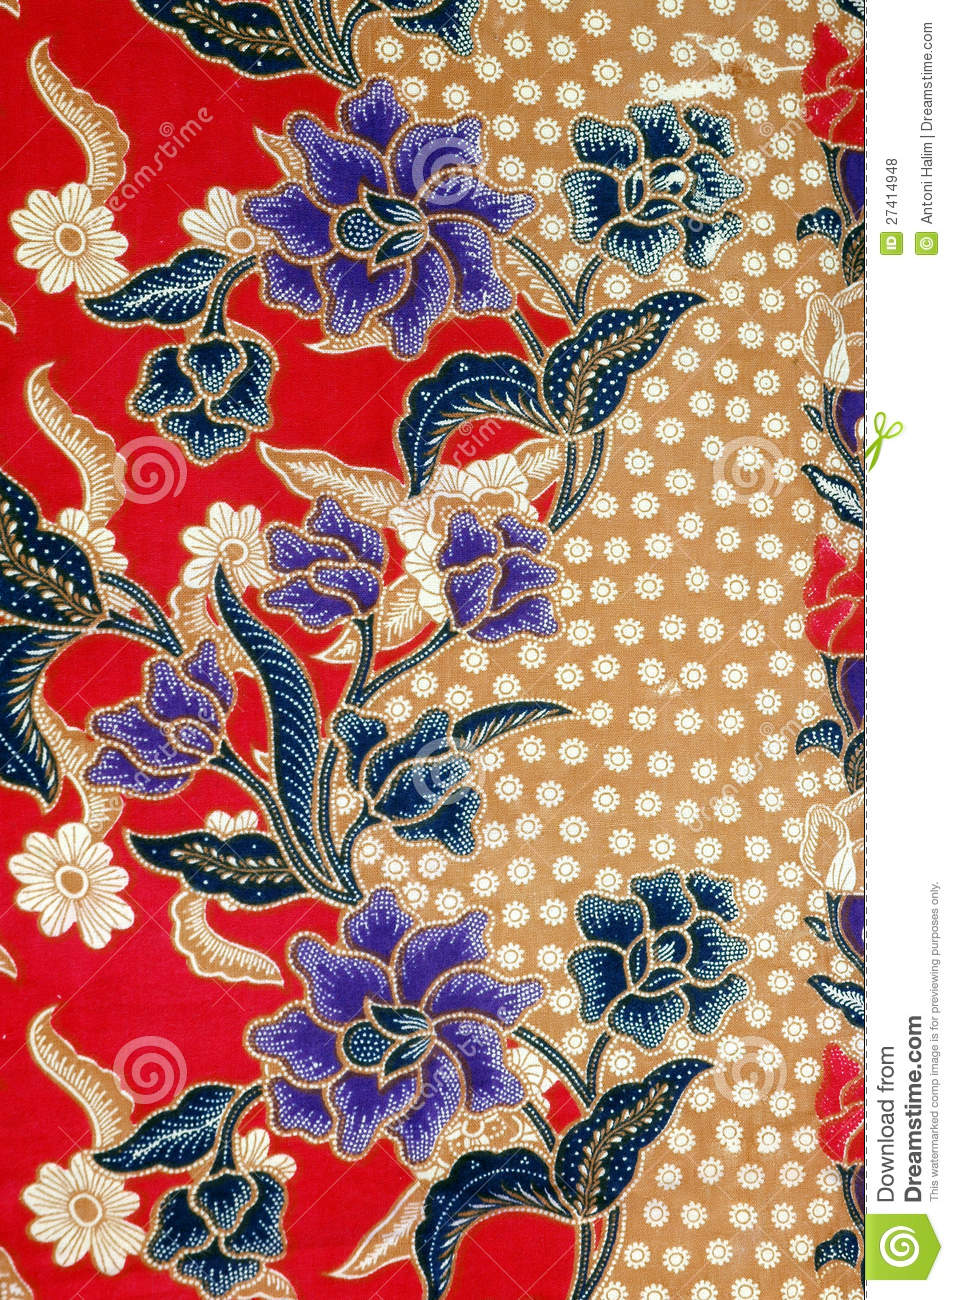 indonesian fabric design royalty free stock photos